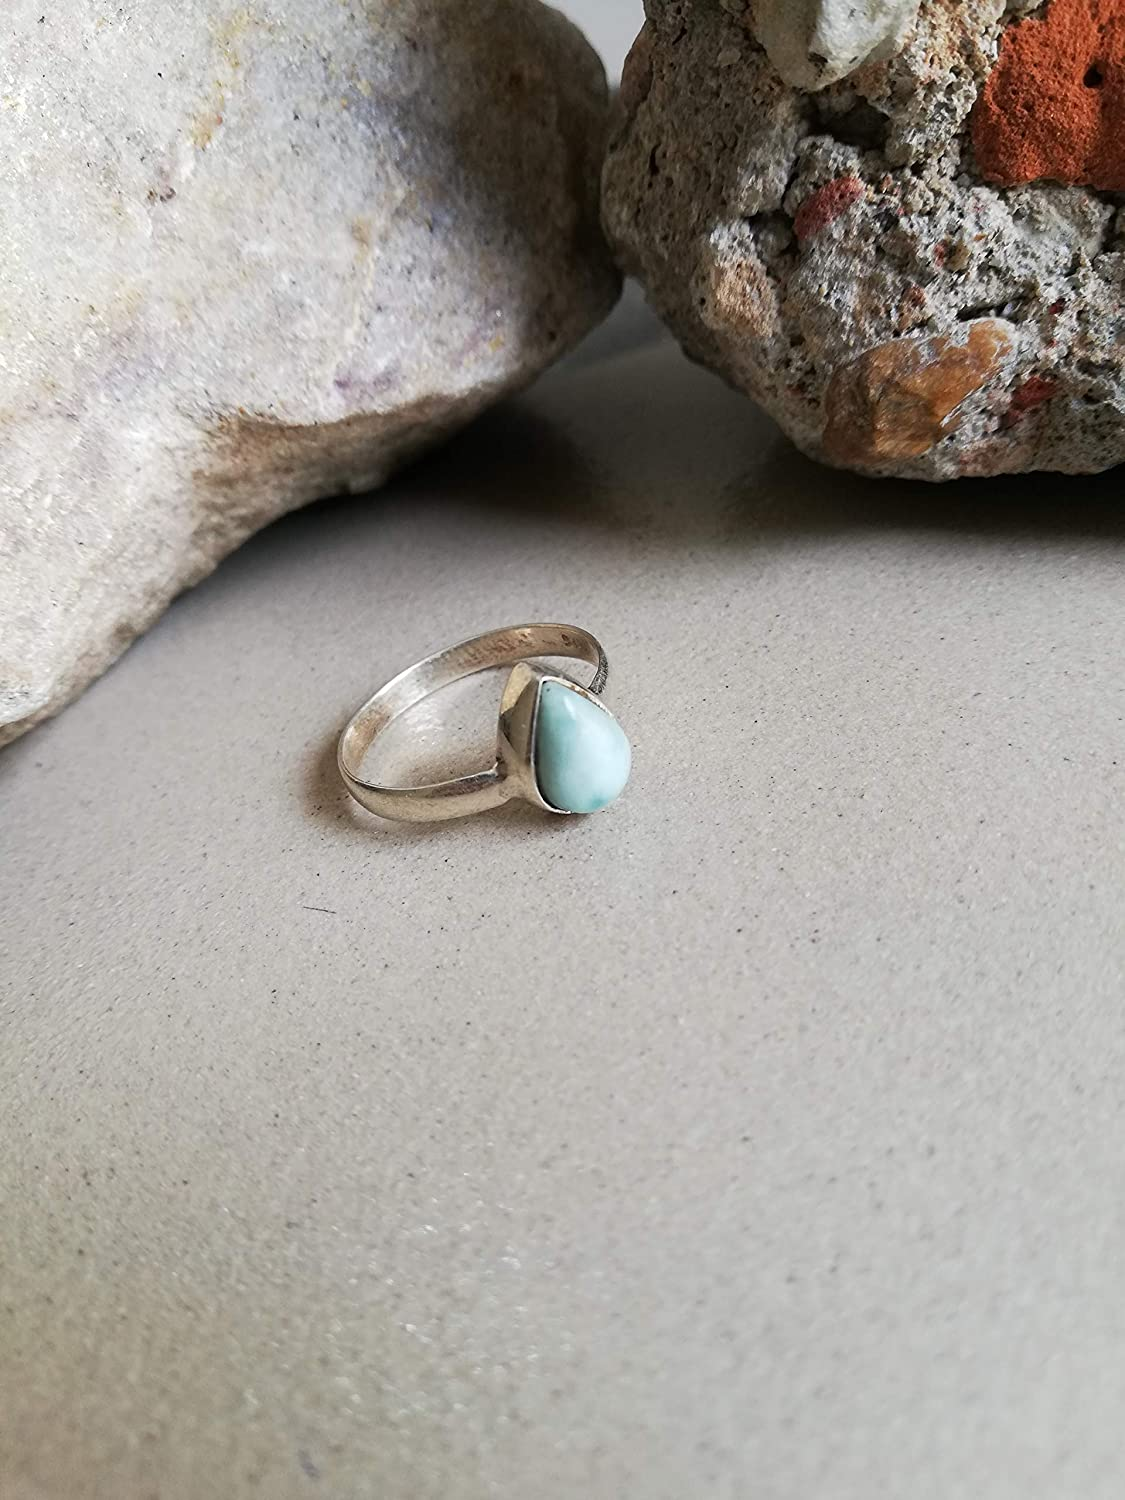 Larimar Ring, 925 Sterling Silver Ring, Exclusive Ring, Trending Ring, Dominican Ring, Personalised Ring, Solitaire Ring, Staking Ring, Republican Ring, Elegant Ring, Teardrop Ring, US All Size Ring.